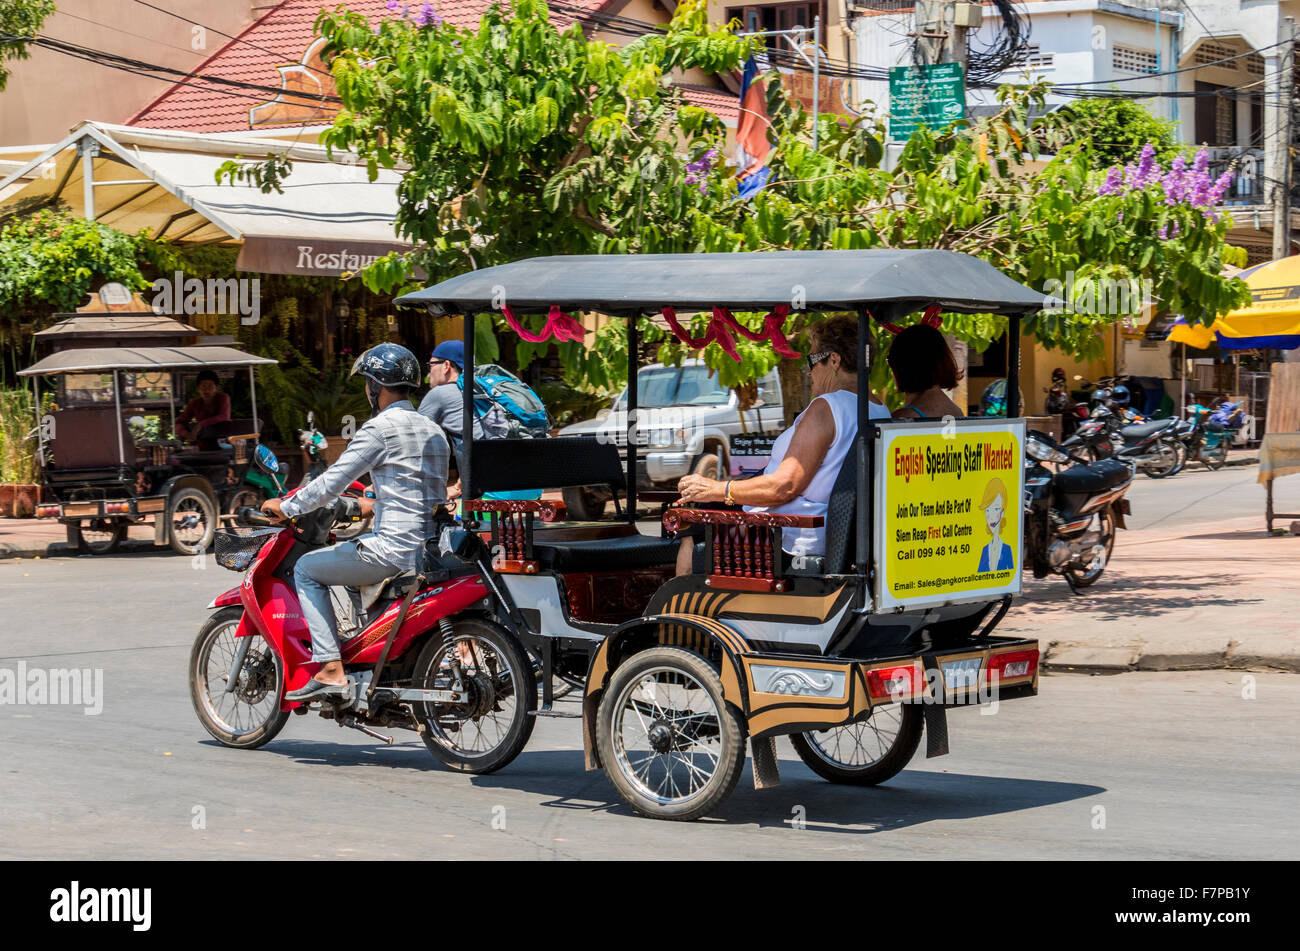 Local Motor Cycle Taxi Service The Tut Tut Taking